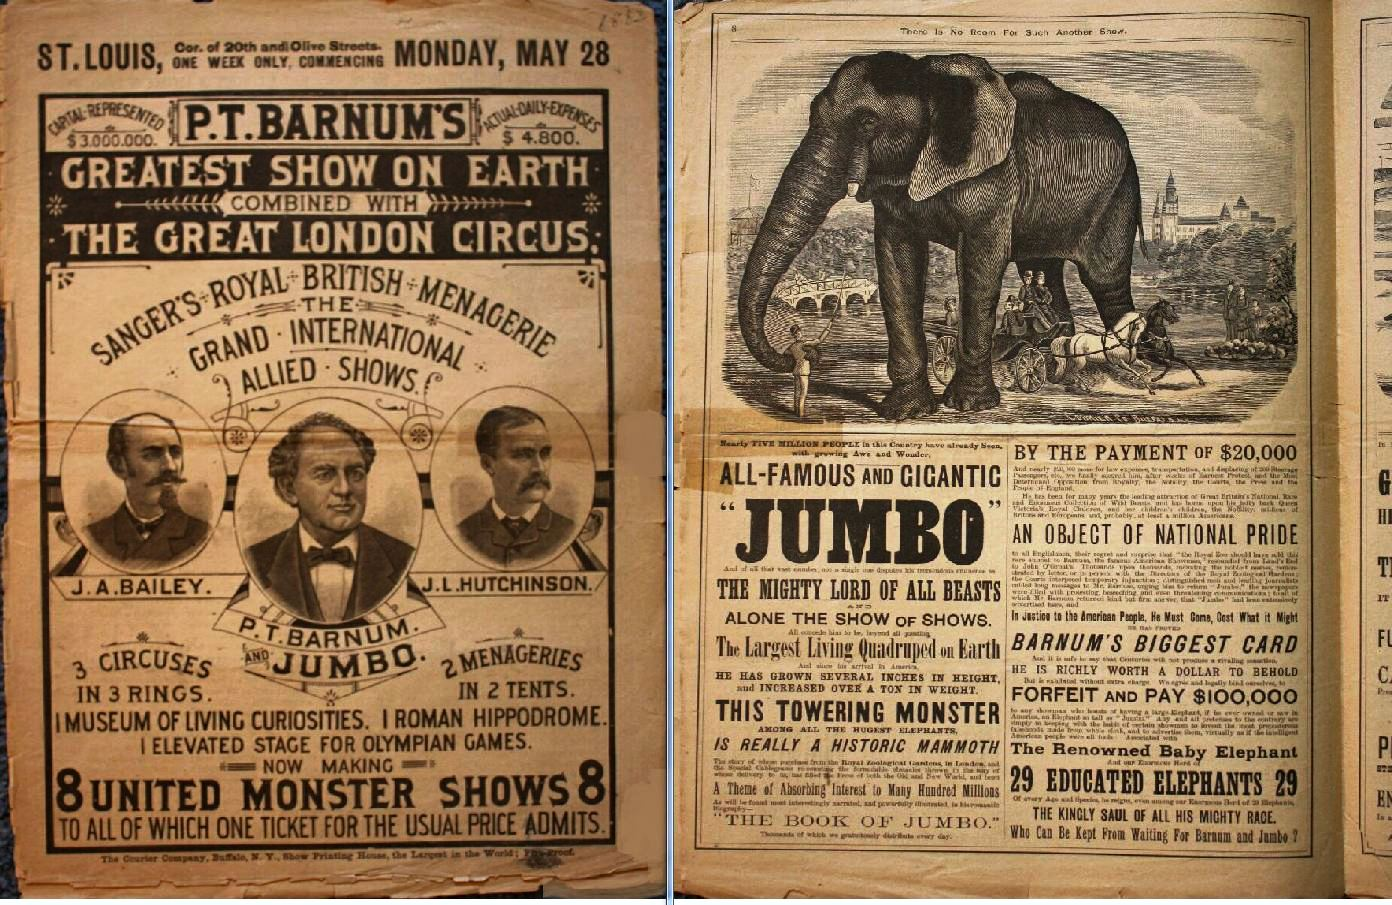 the greatest show on earth a biography of p t barnum On sunday, may 21, ringling bros and barnum & bailey we believe it shows what made ringling bros and barnum & bailey truly the greatest show on earth.